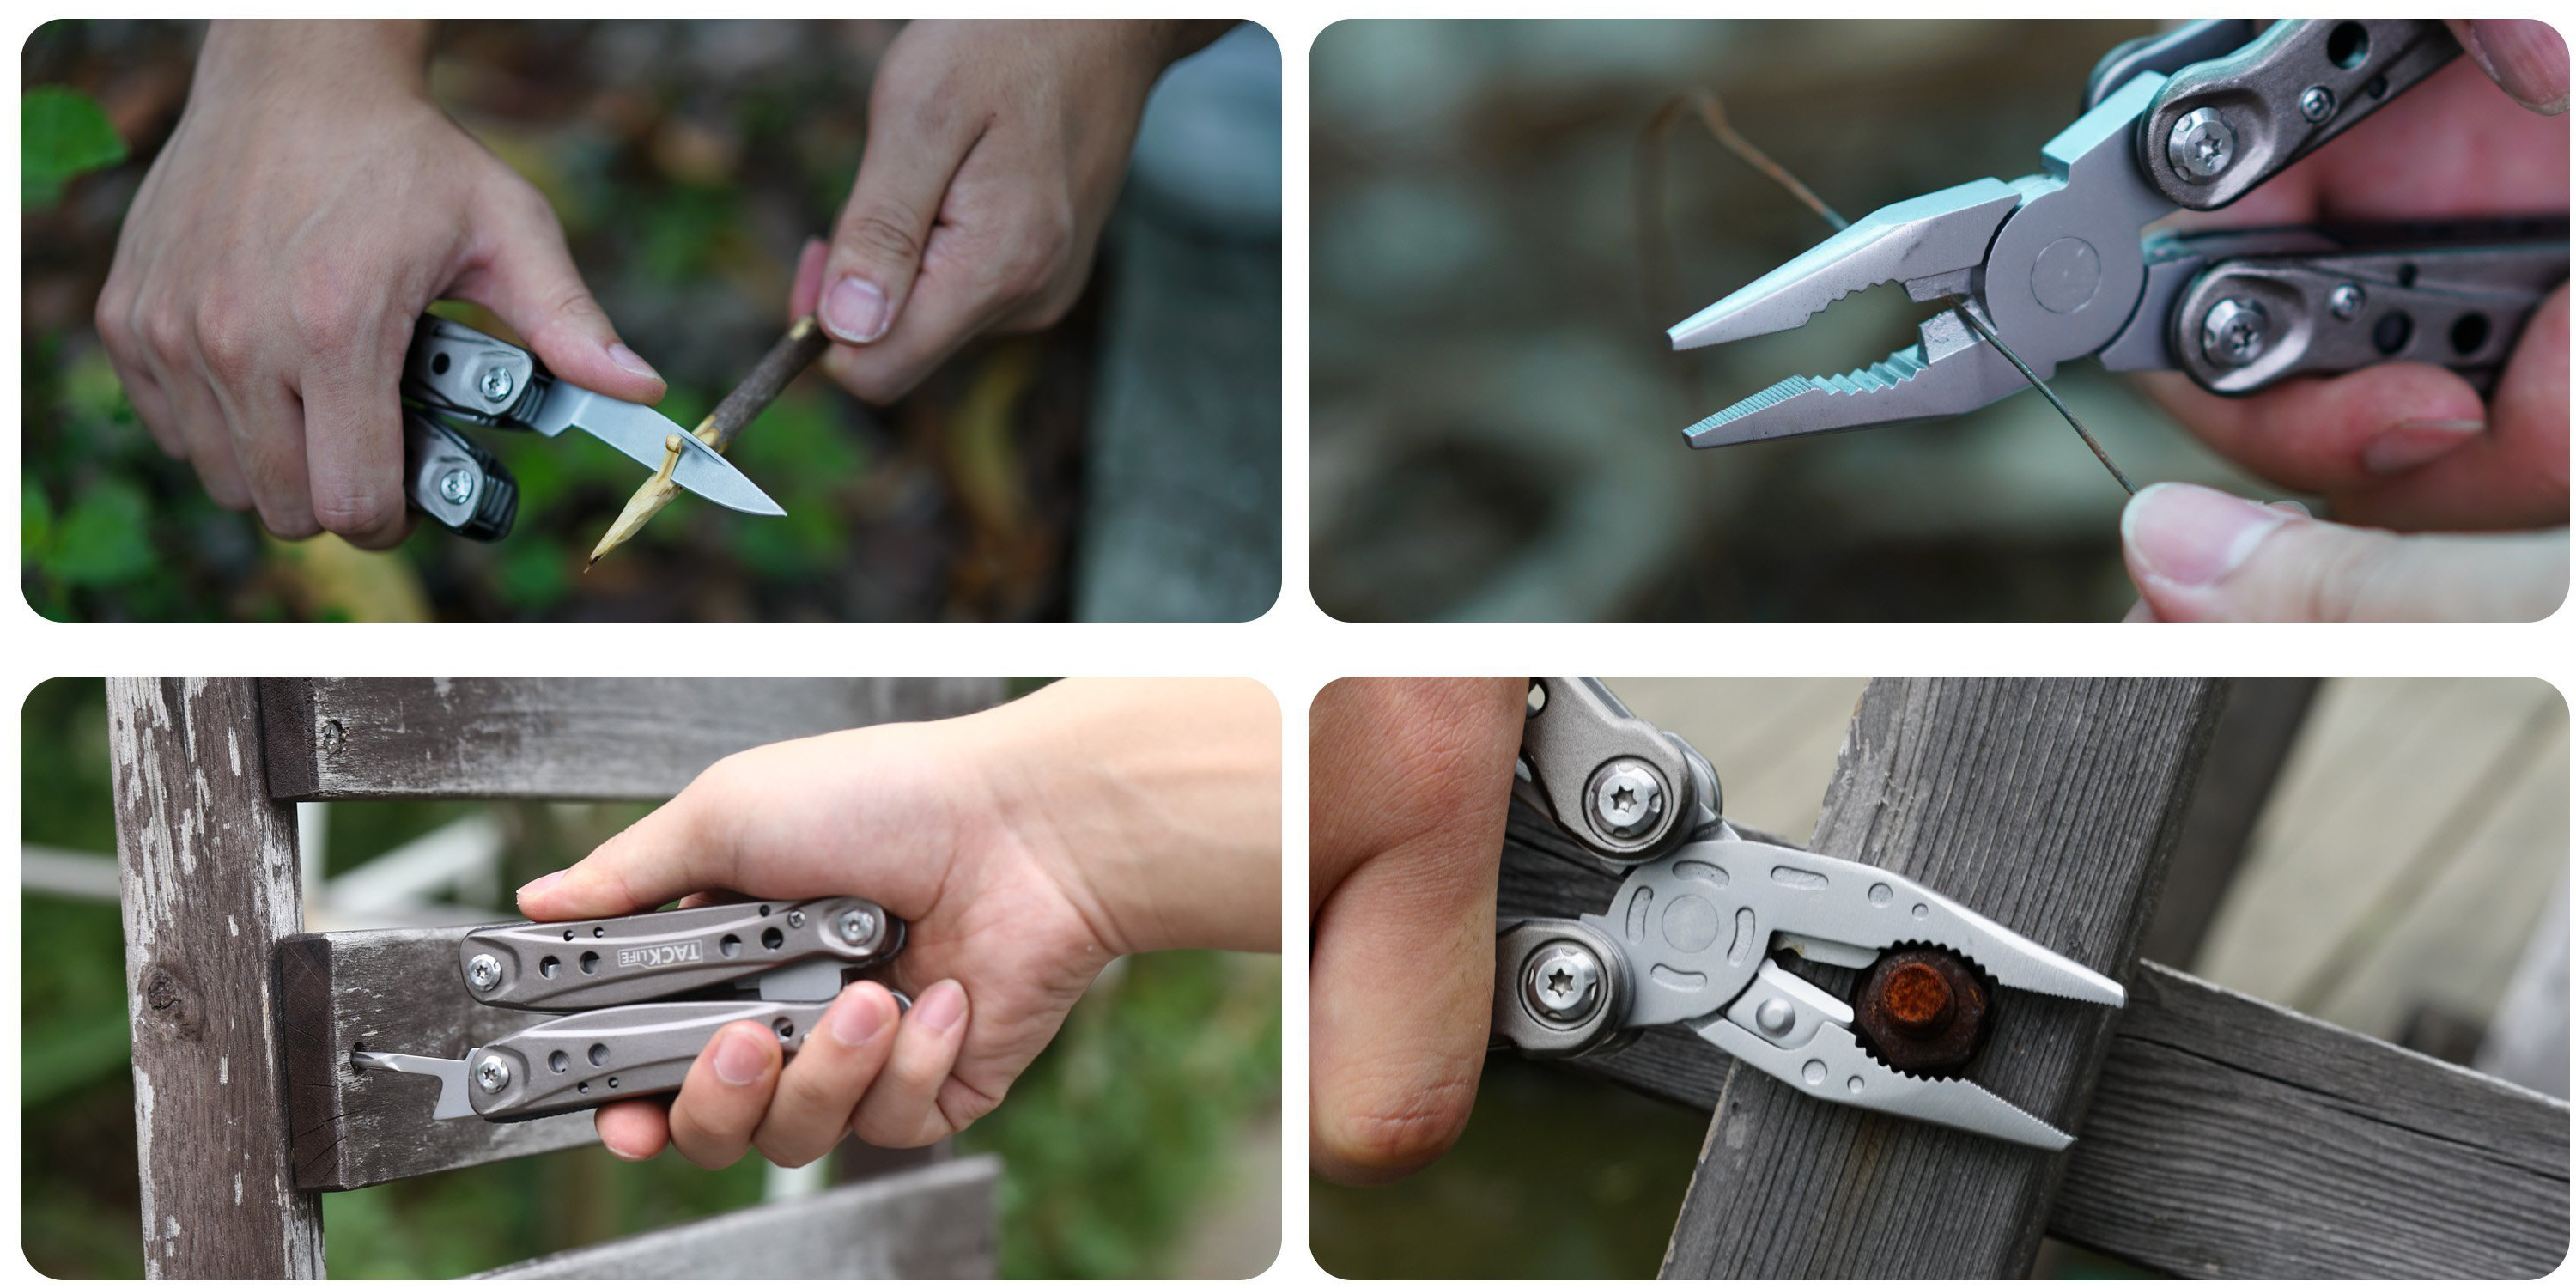 Tacklife Stainless Steel Multi-Tool with Pocket Knife for $5 Prime shipped (Reg. $15)